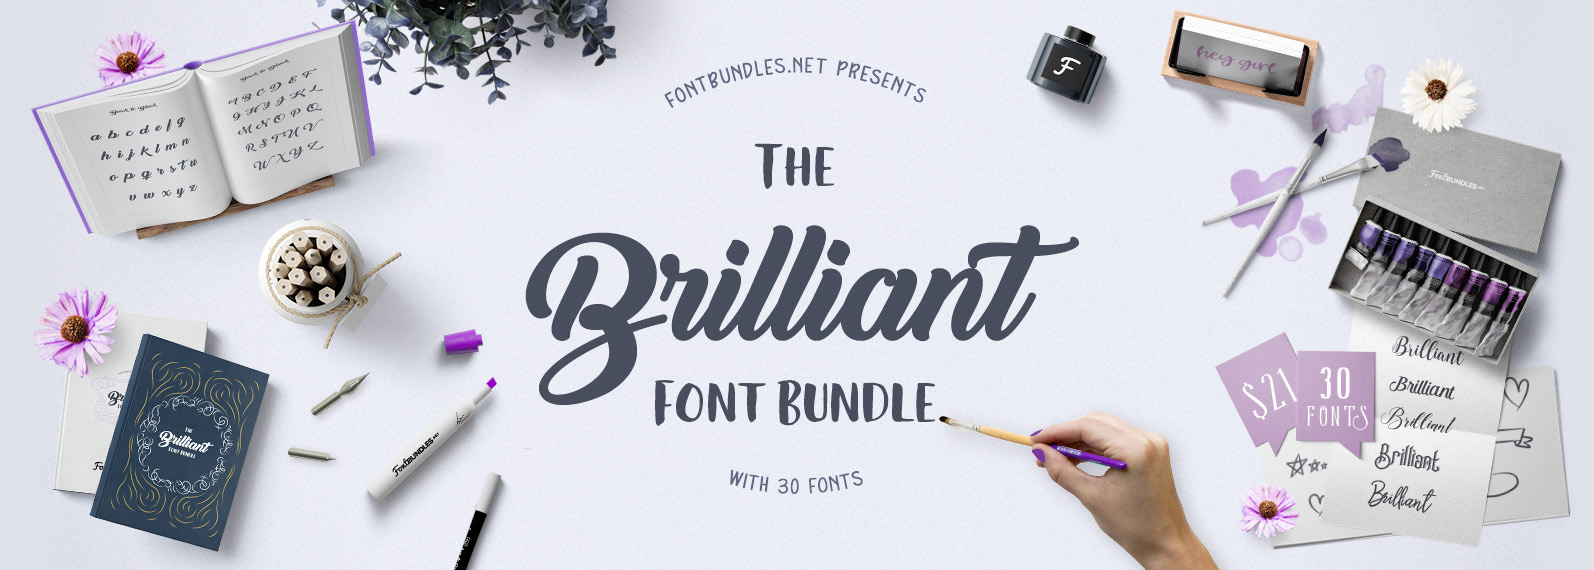 The Brilliant Font Bundle Cover